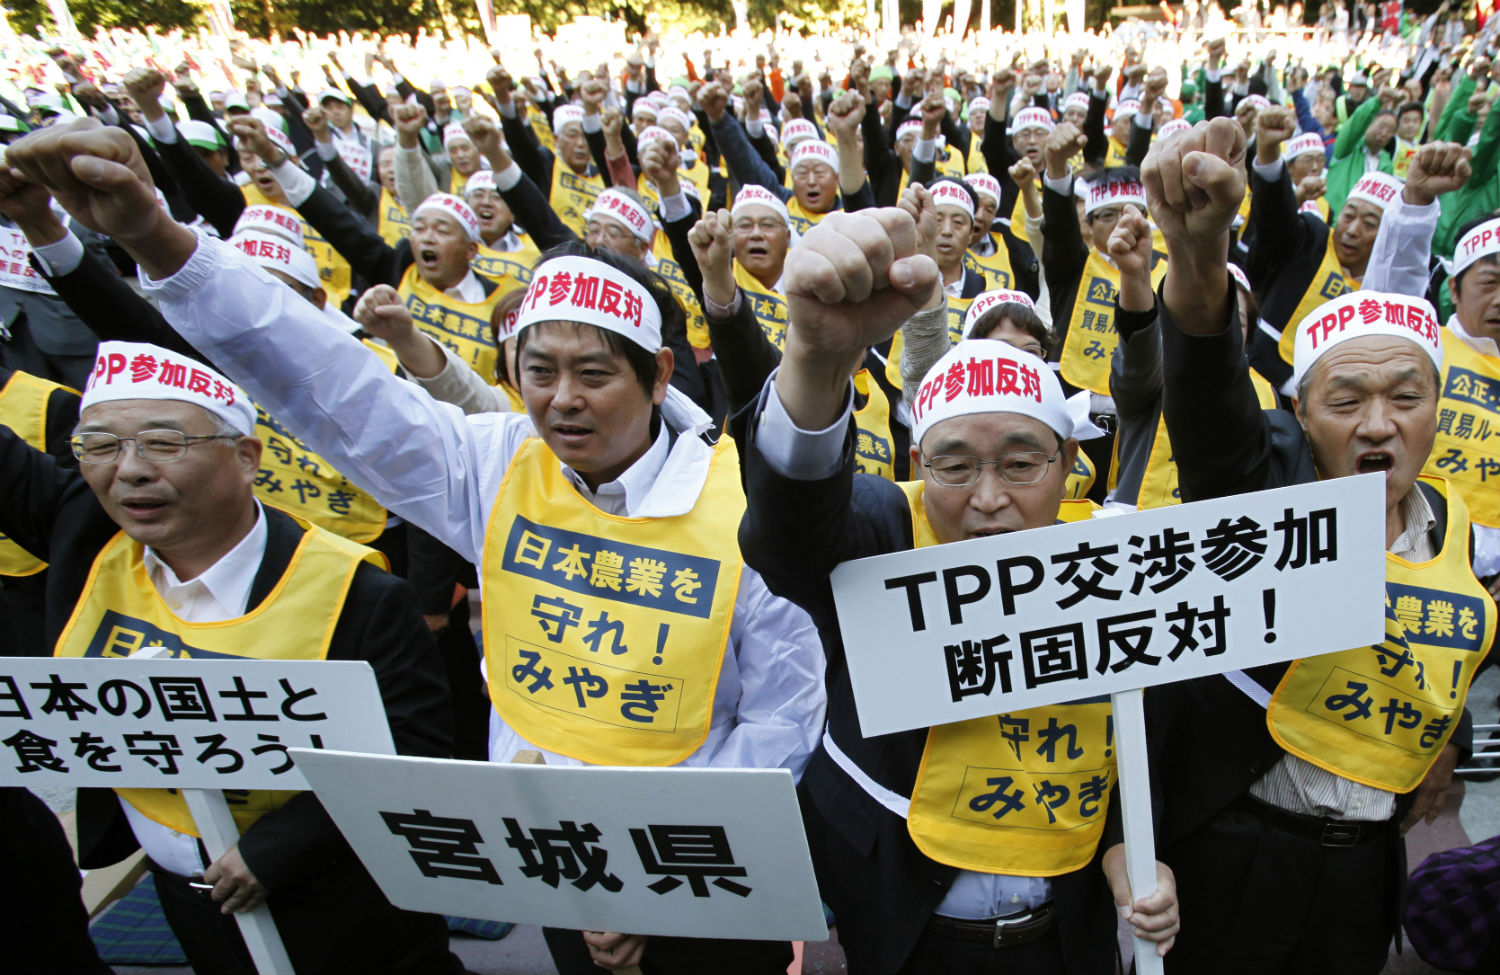 Farmers-in-Japan-protesting-the-Trans-Pacific-Partnership